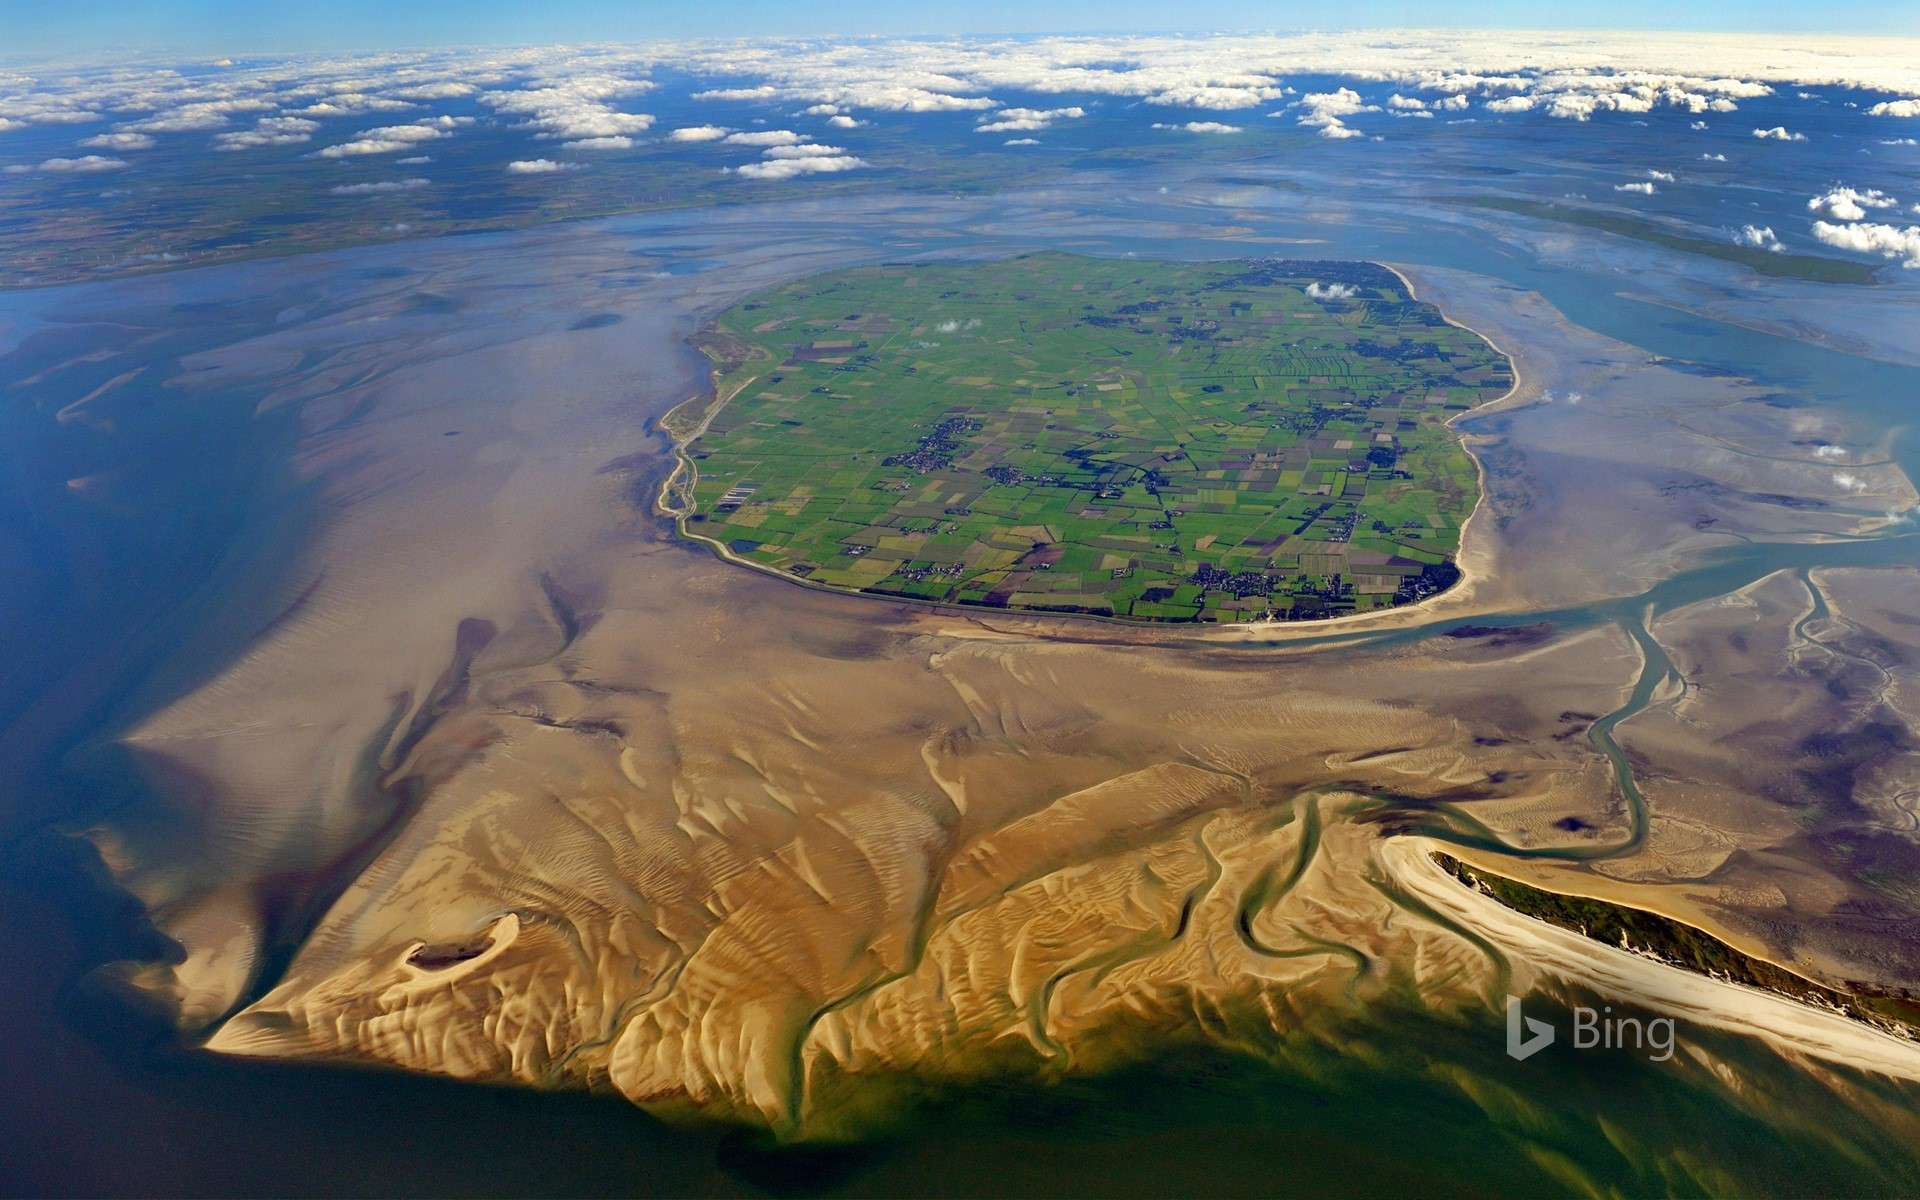 Aerial view of Foehr island, Schleswig-Holstein, Germany